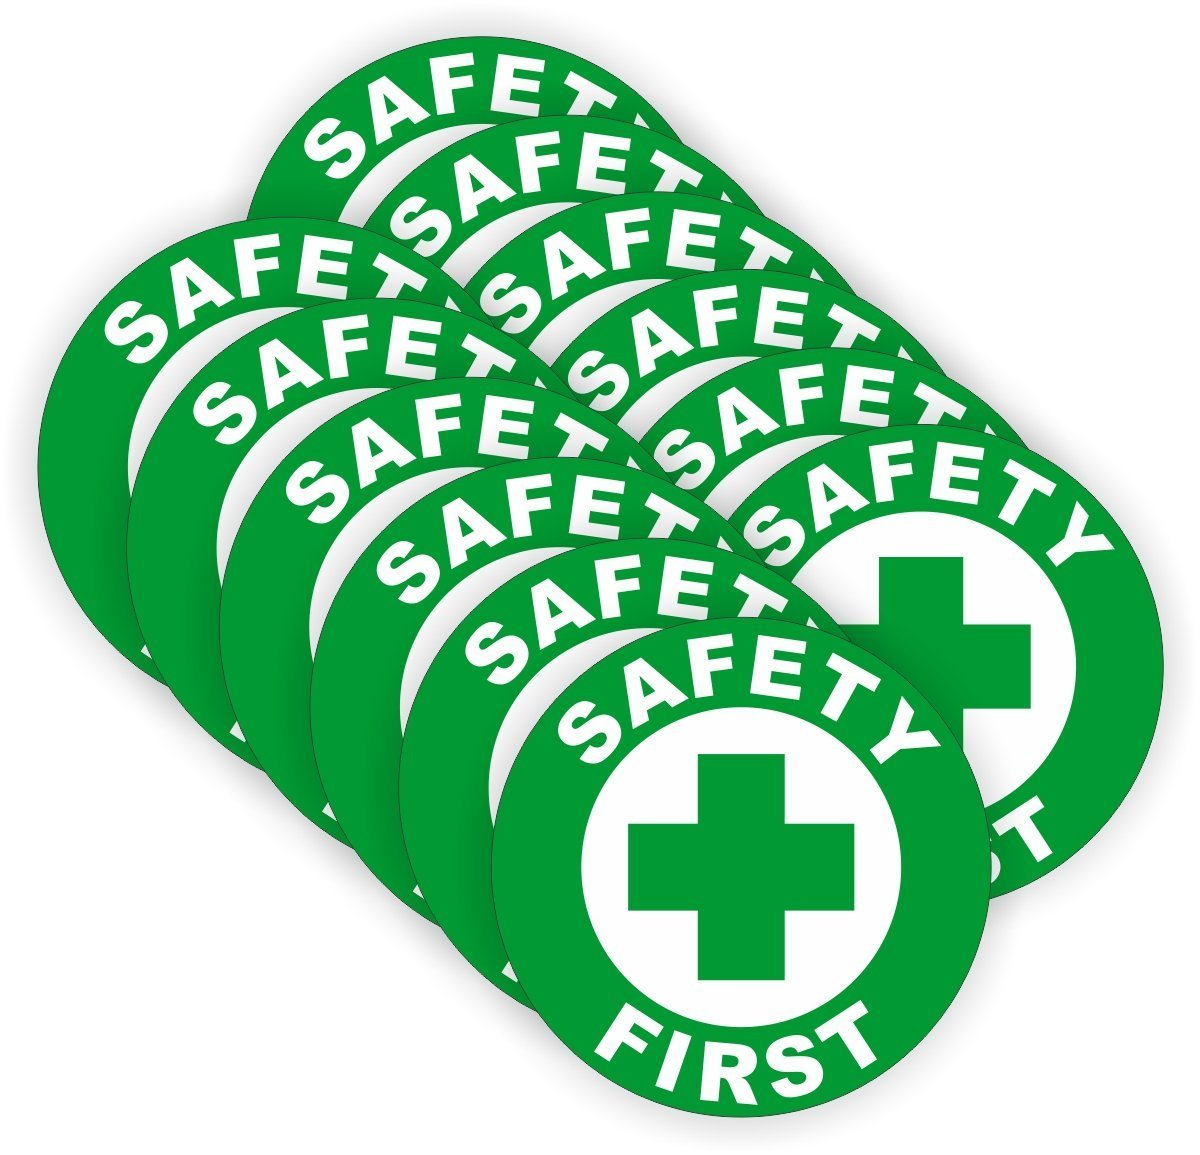 (12 PACK) Safety First circle by StickerDad - size: 2'' ROUND color: GREEN/WHITE - Full Color Printed Sticker for Hard Hat, Helmet, Windows, Walls, Bumpers, Laptop, Lockers, etc.